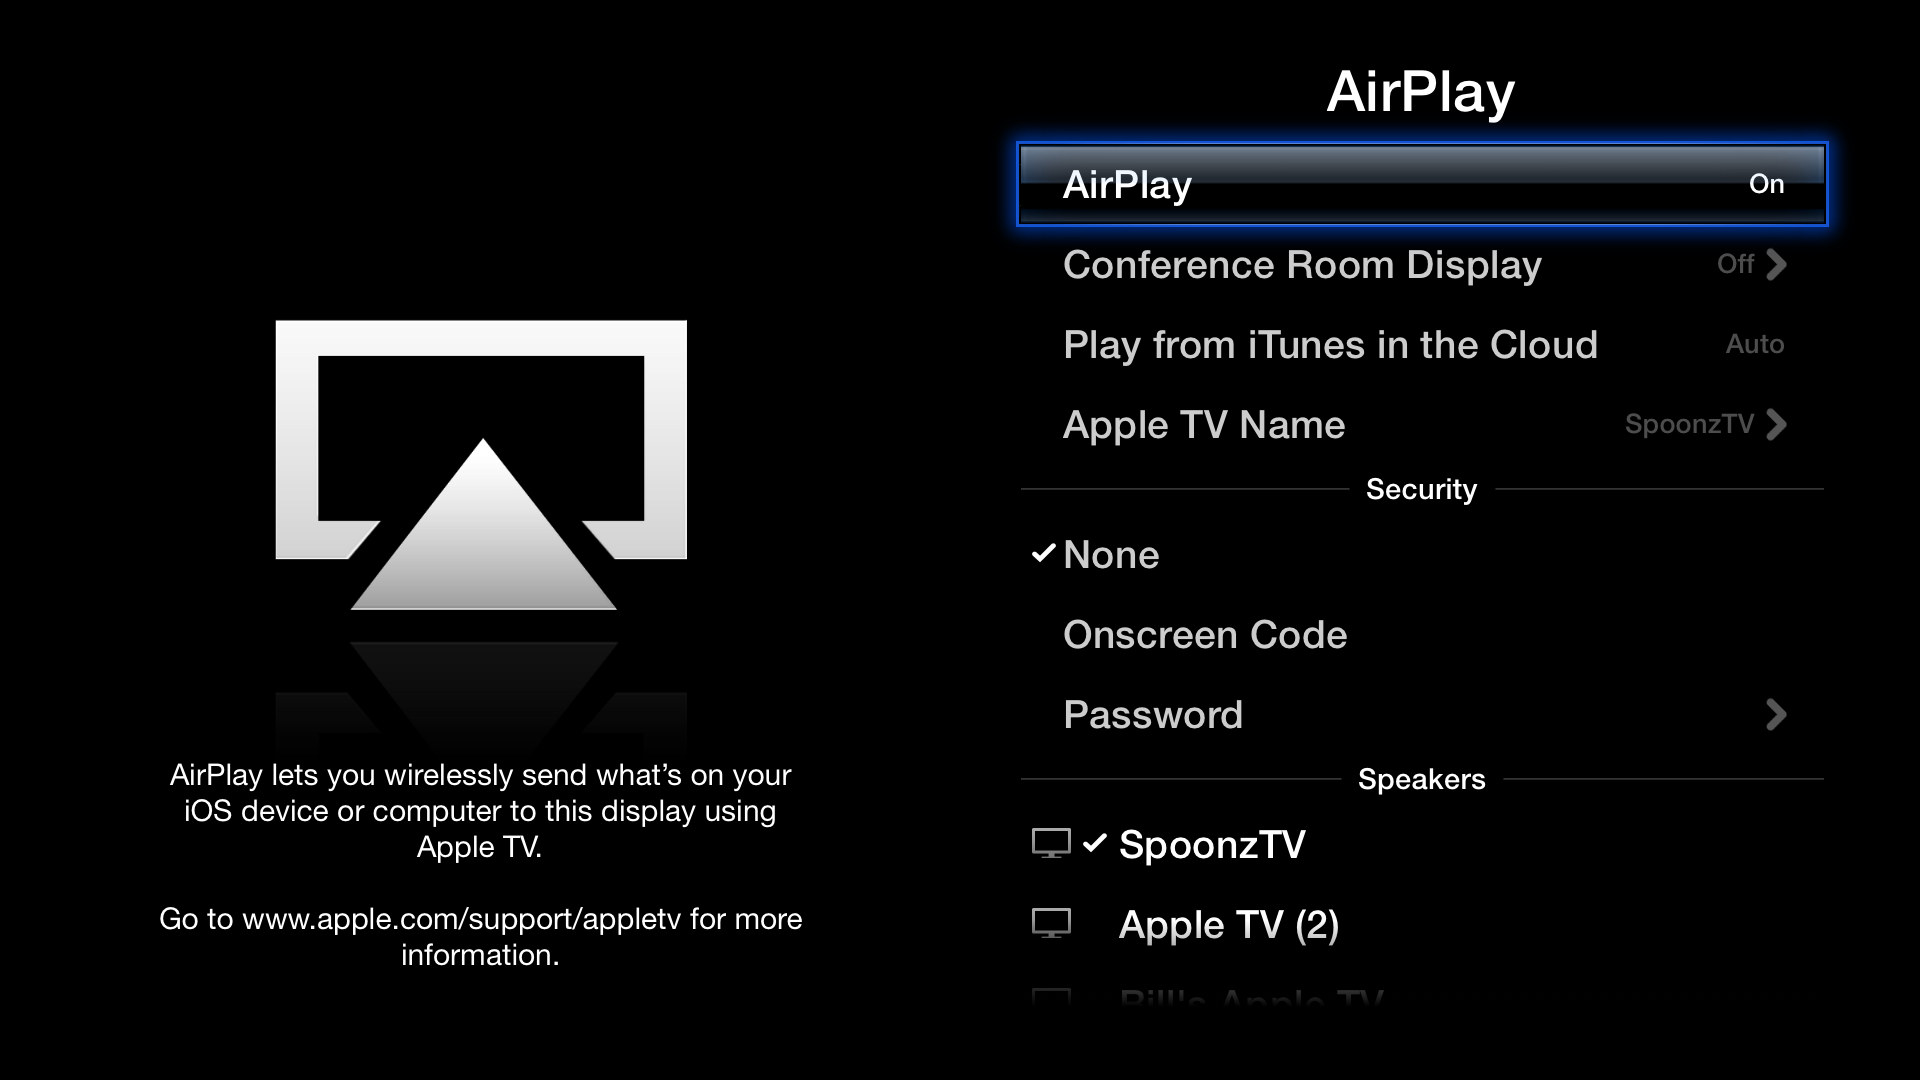 AirPlay Settings